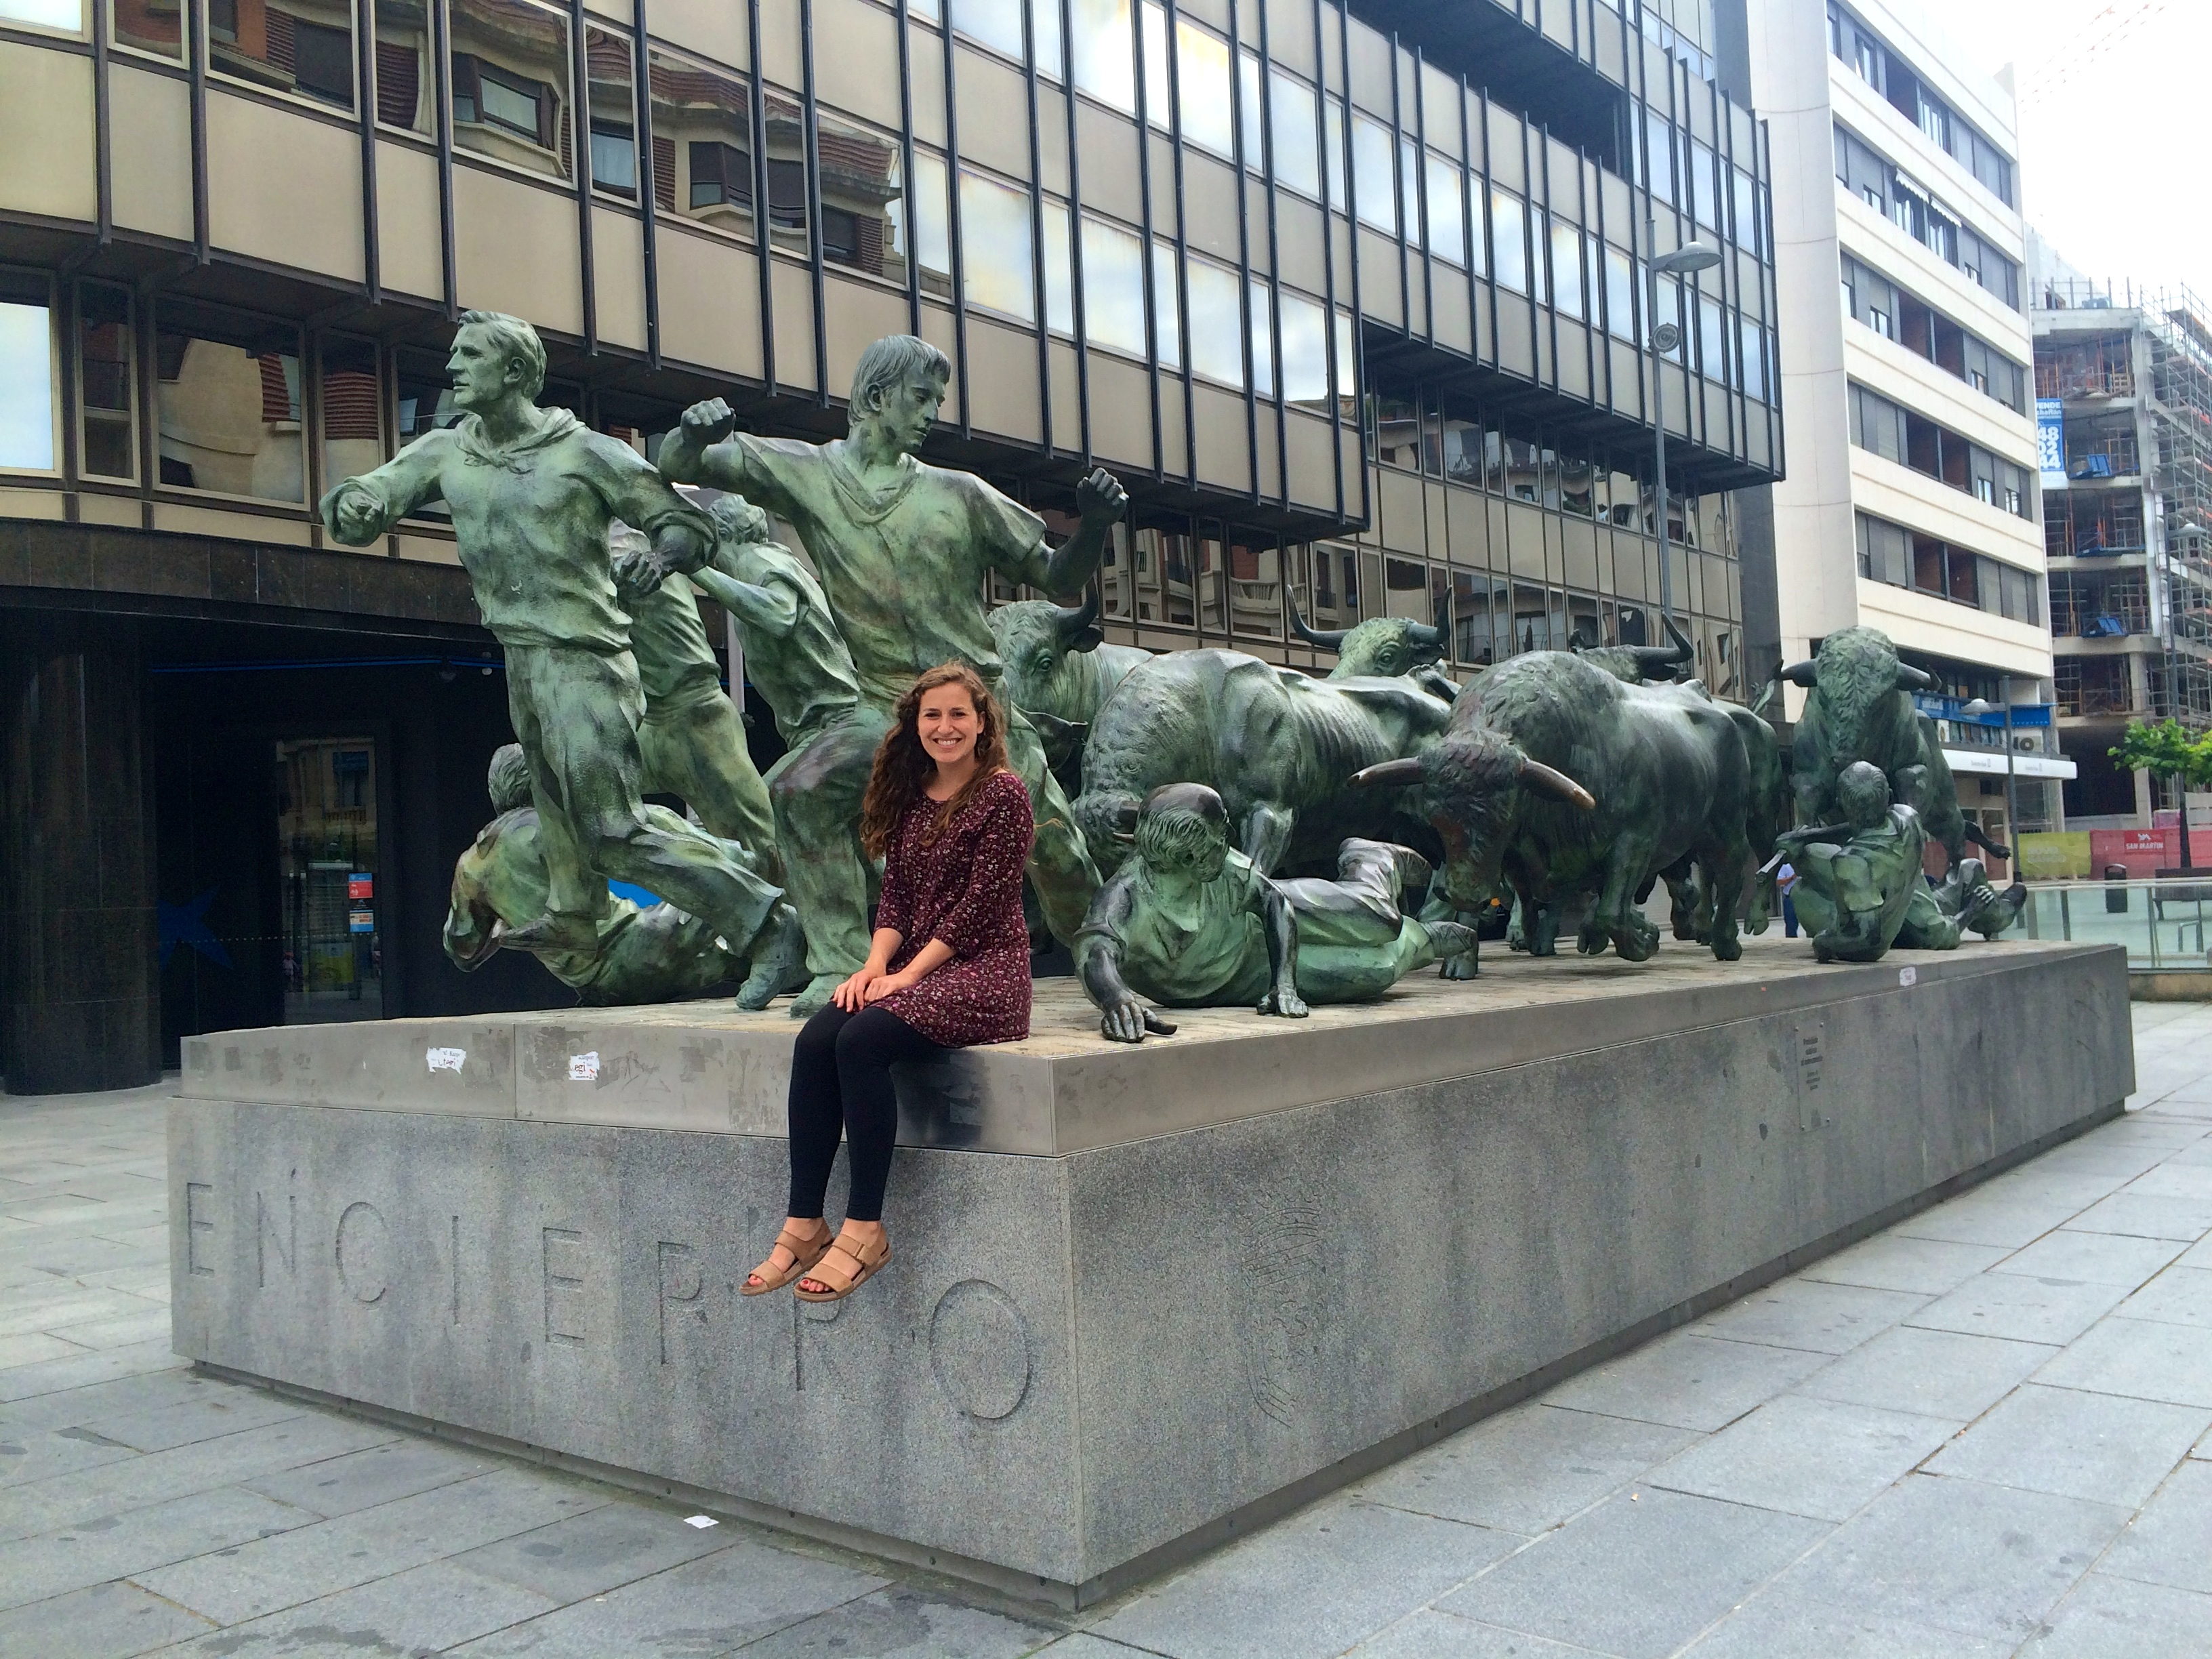 Spain ISEP- Leah Bell in Pamplona, Spain with the famous Running of the Bulls statue